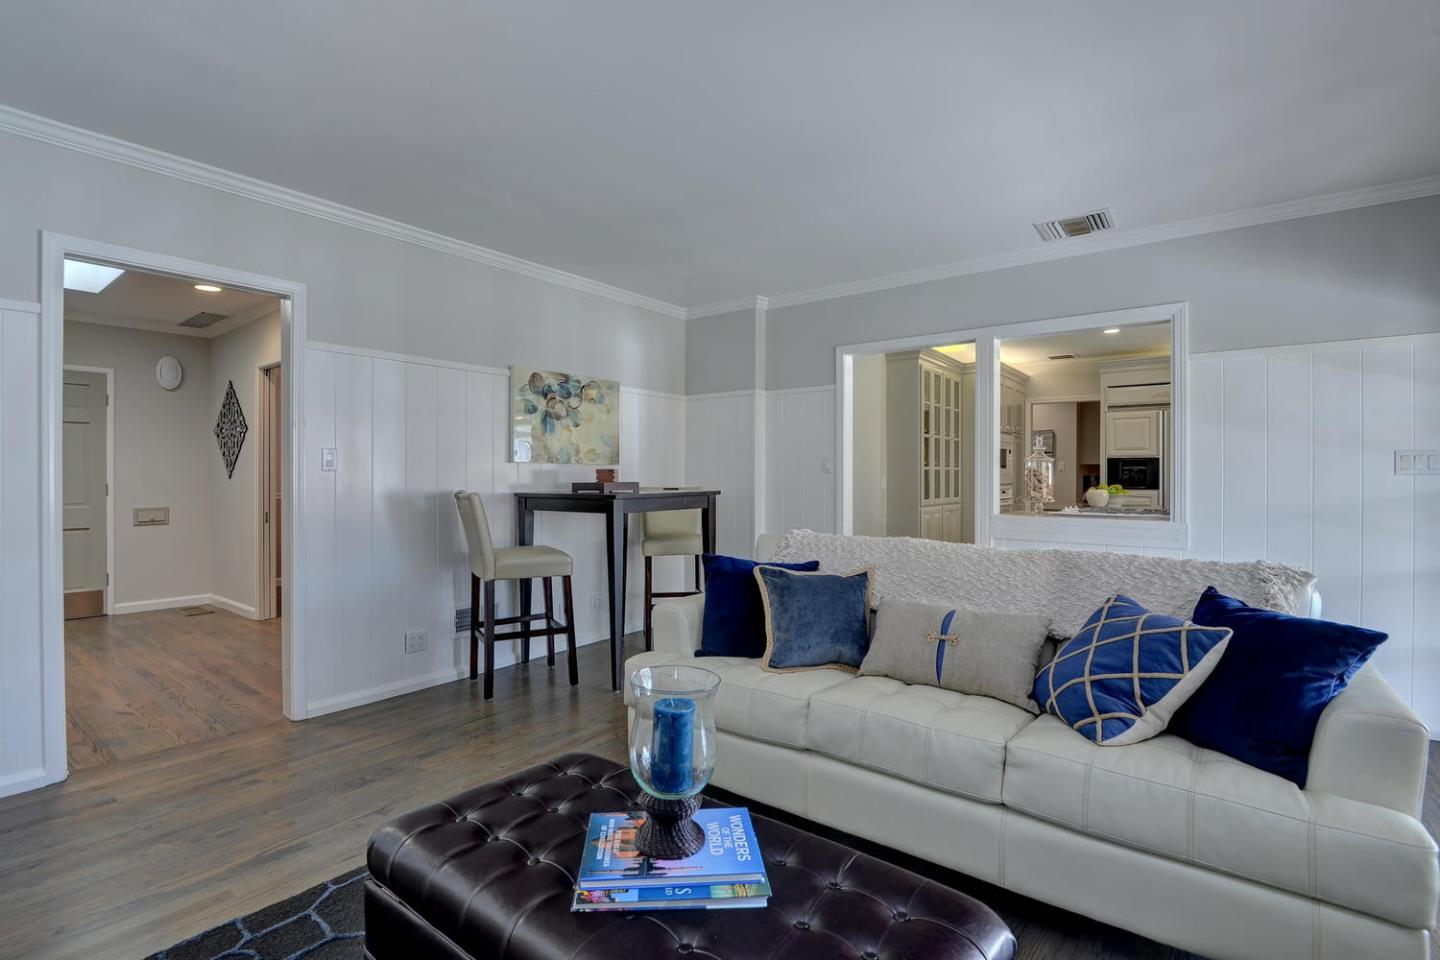 Additional photo for property listing at 1704 Sweetbriar Dr  SAN JOSE, CALIFORNIA 95125